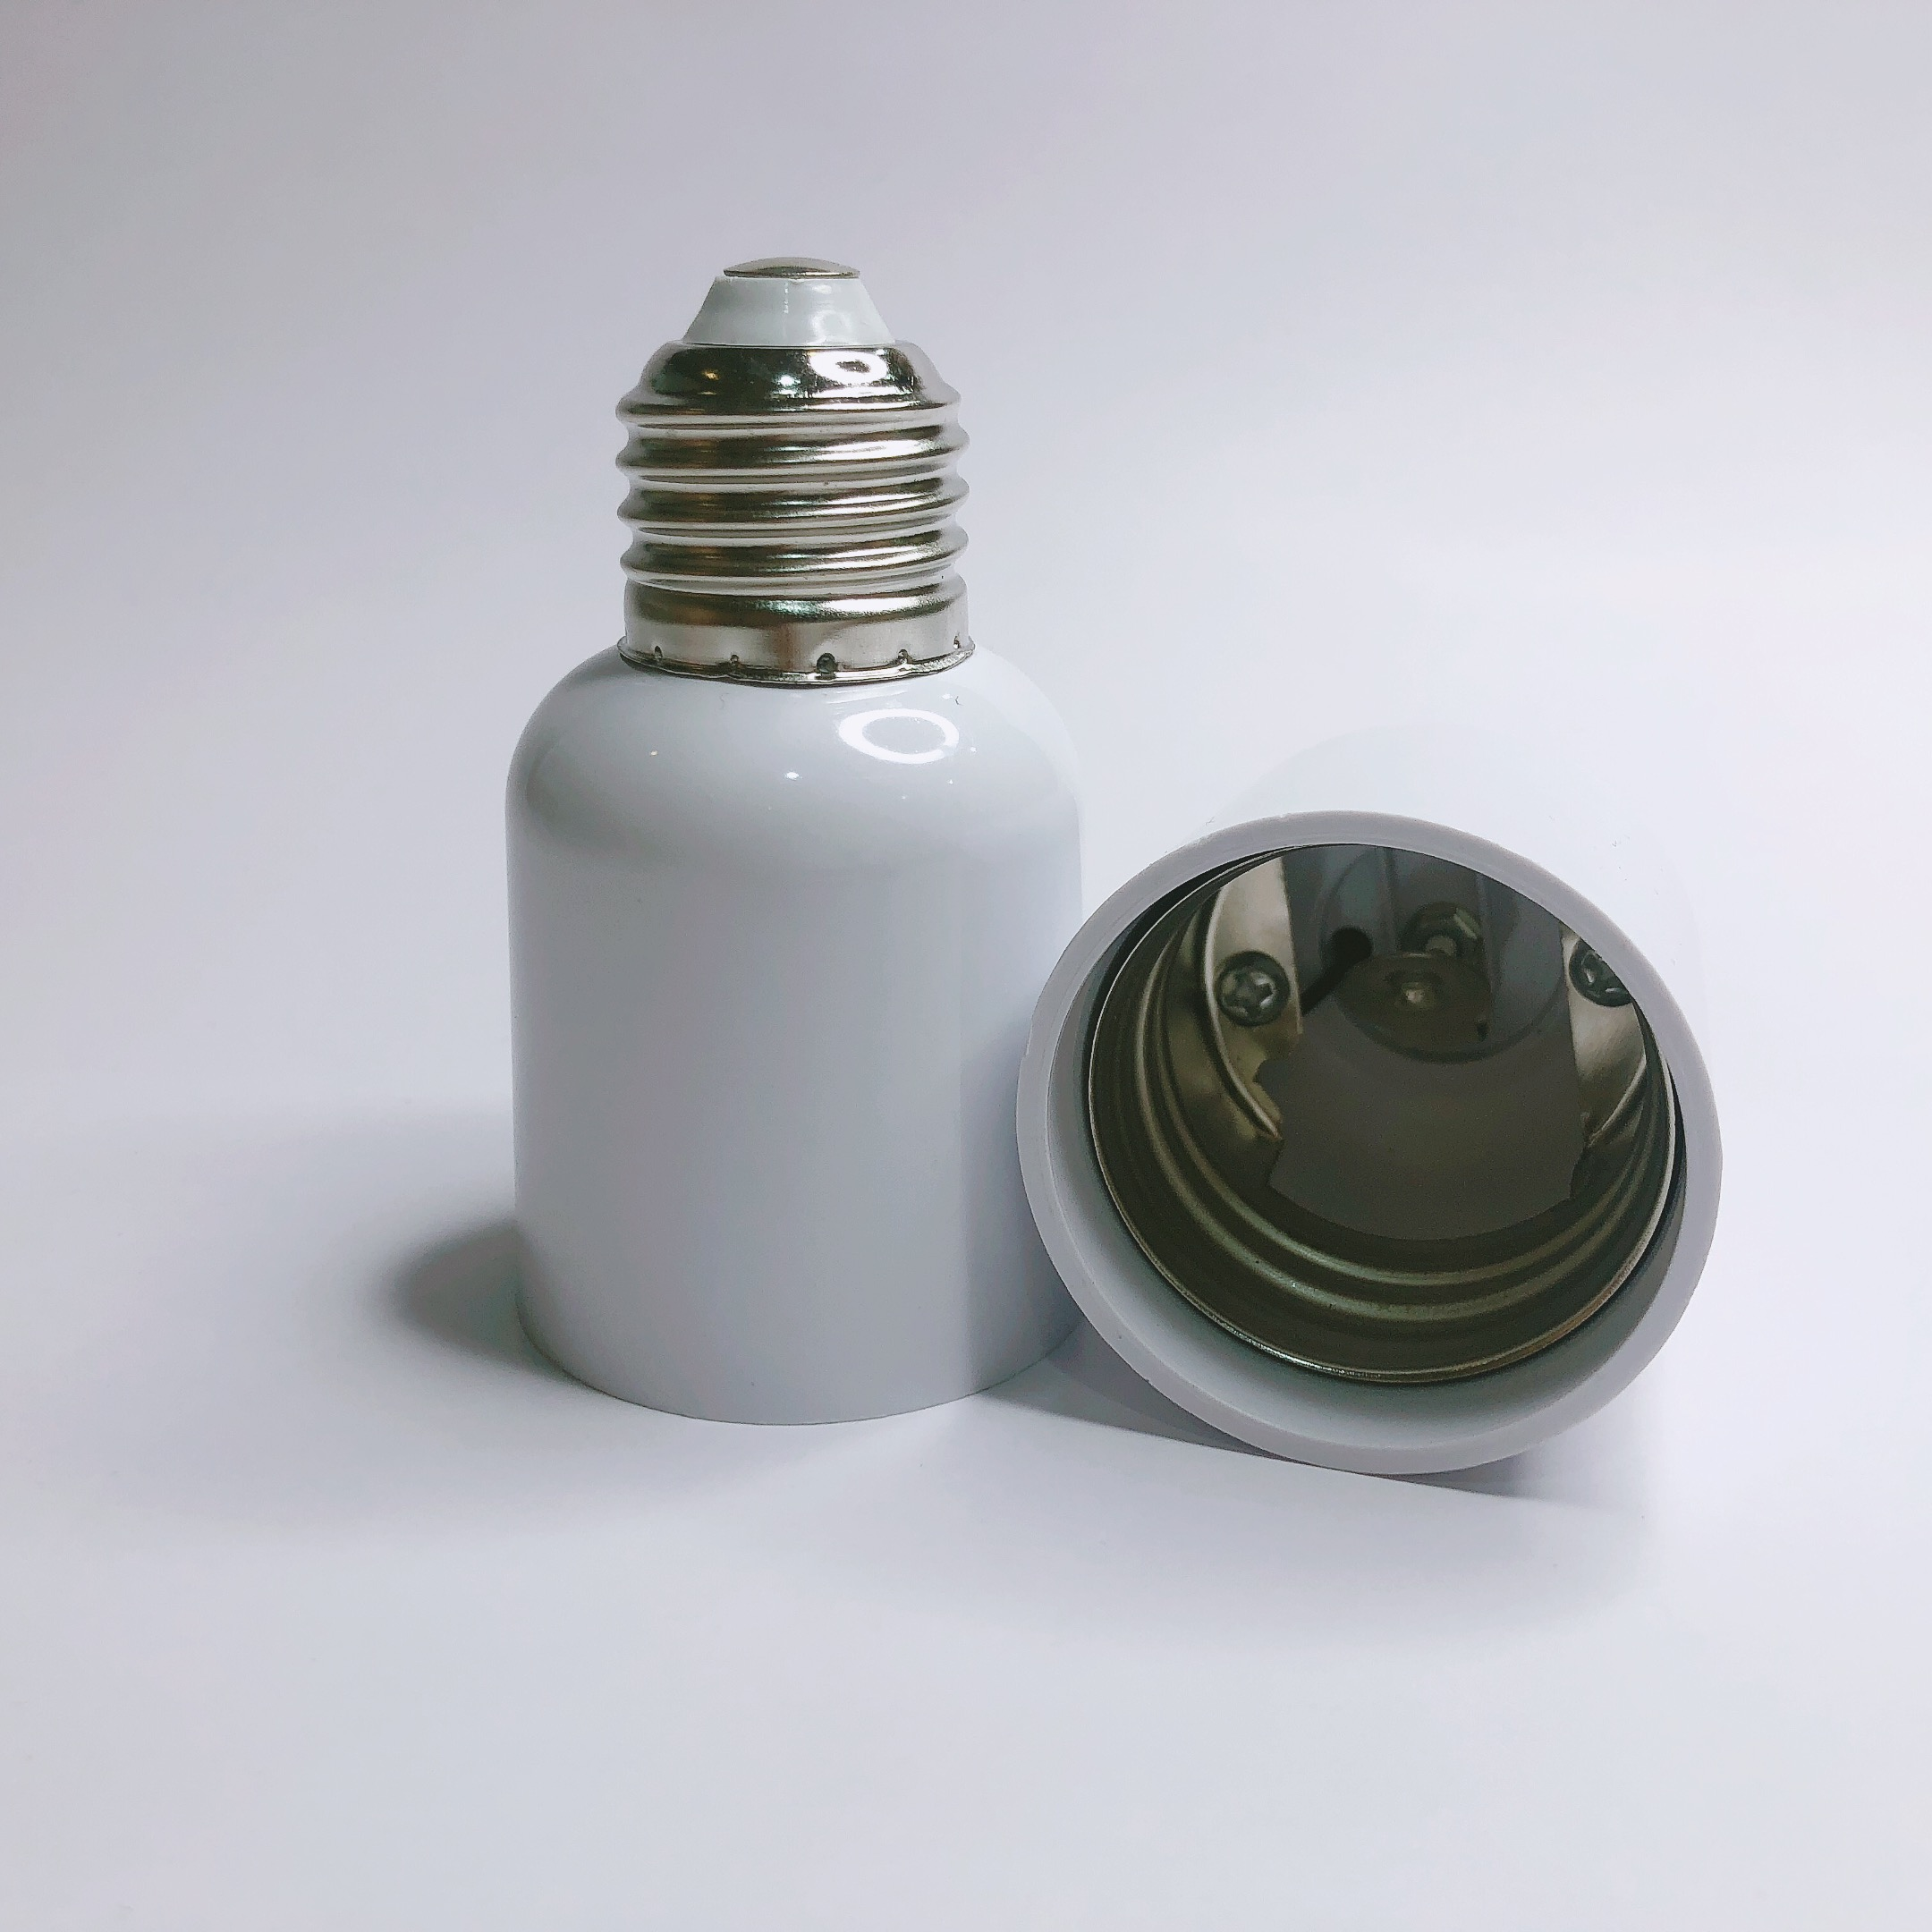 E27 To E40 Accessories Led Socket Heat Resistant Adapter Lightweight Home Bulb Screw Base Lamp Holder Converter